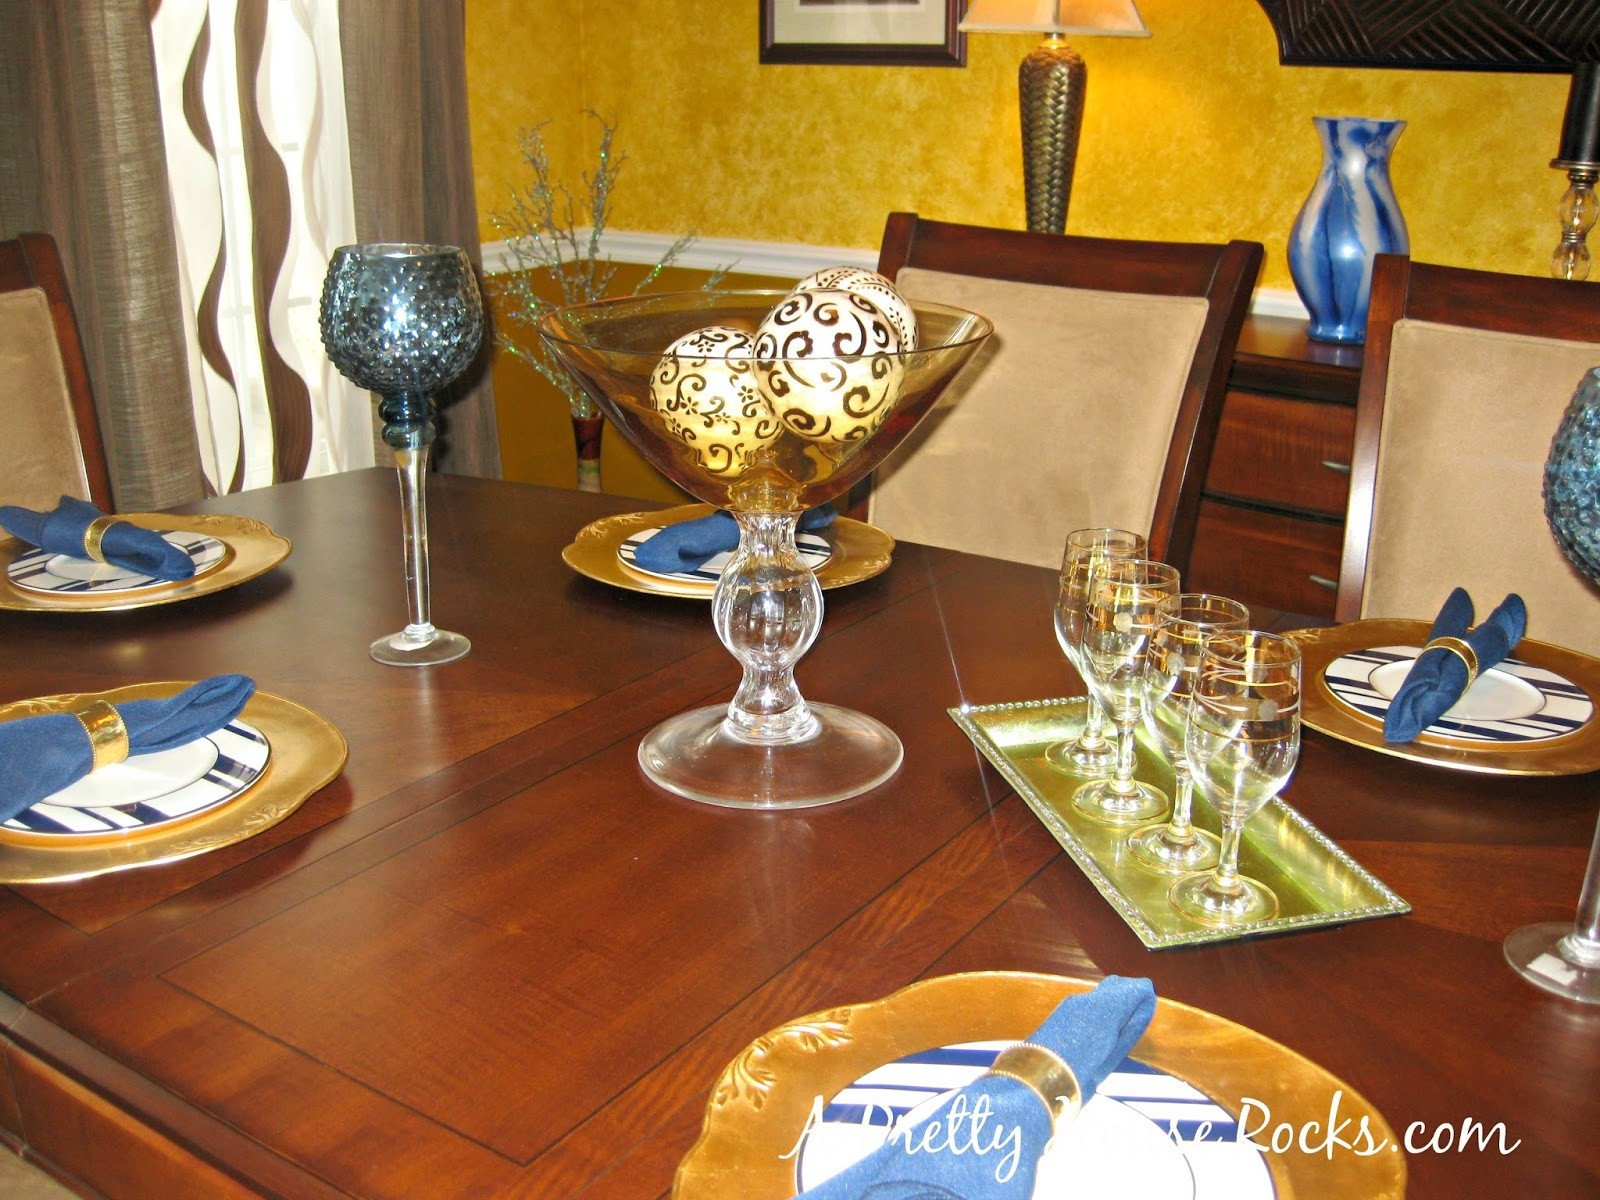 Blue and Gold Home Decor Awesome Brown Blue and Gold Dining Room Decor A Pretty House Rocks Home Decorating Blog